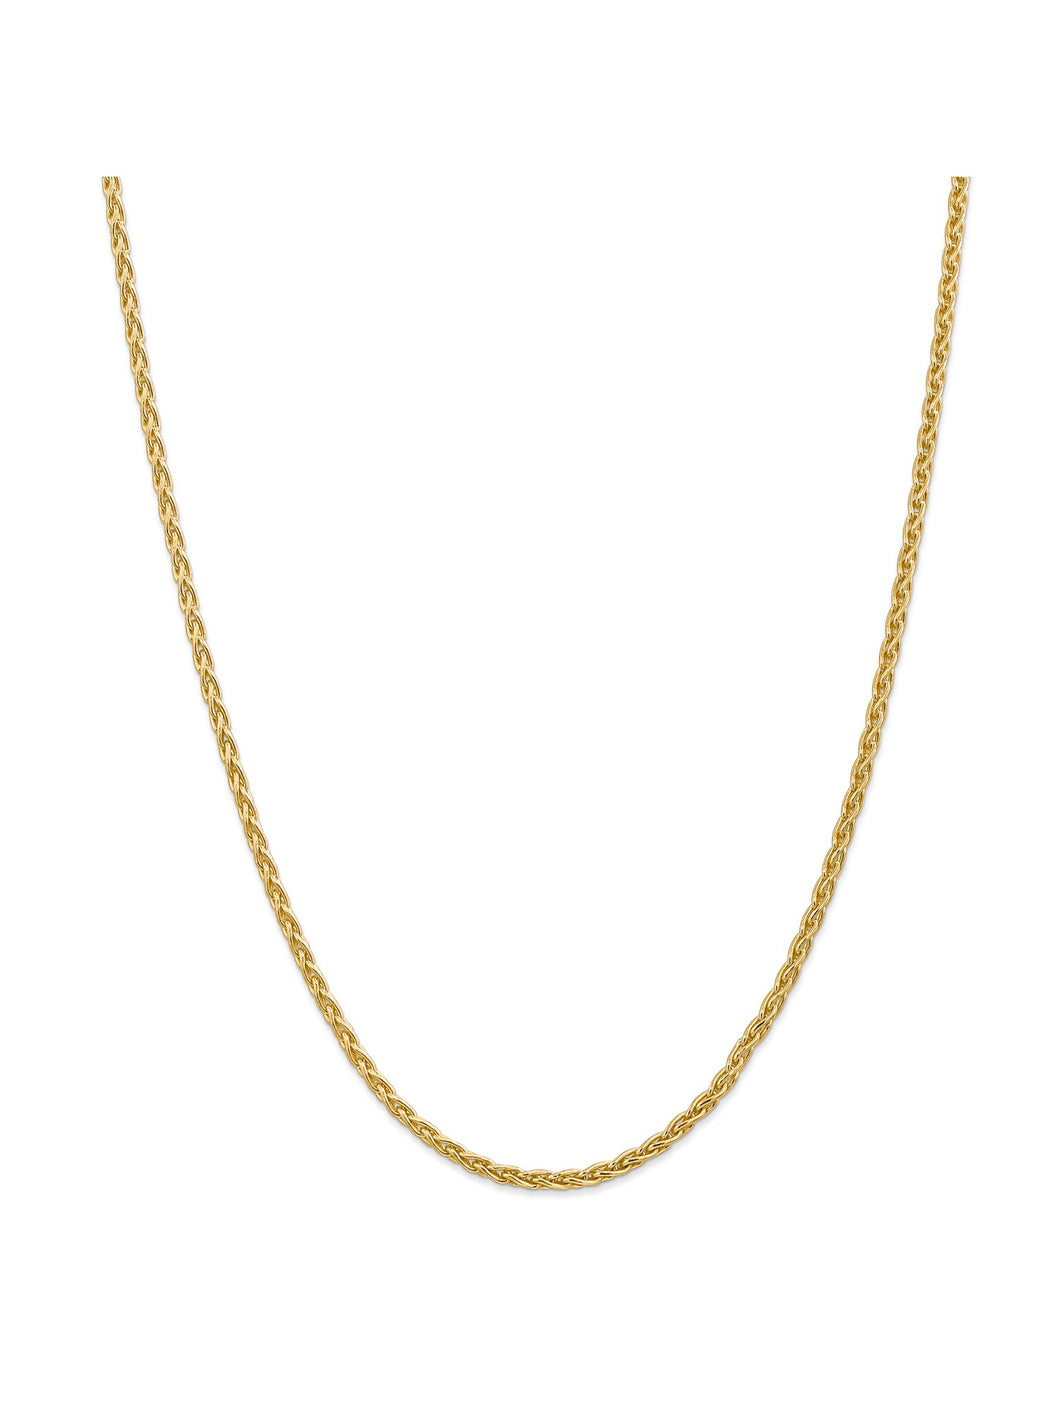 14k Yellow Gold 3mm Parisian Wheat Chain Necklace